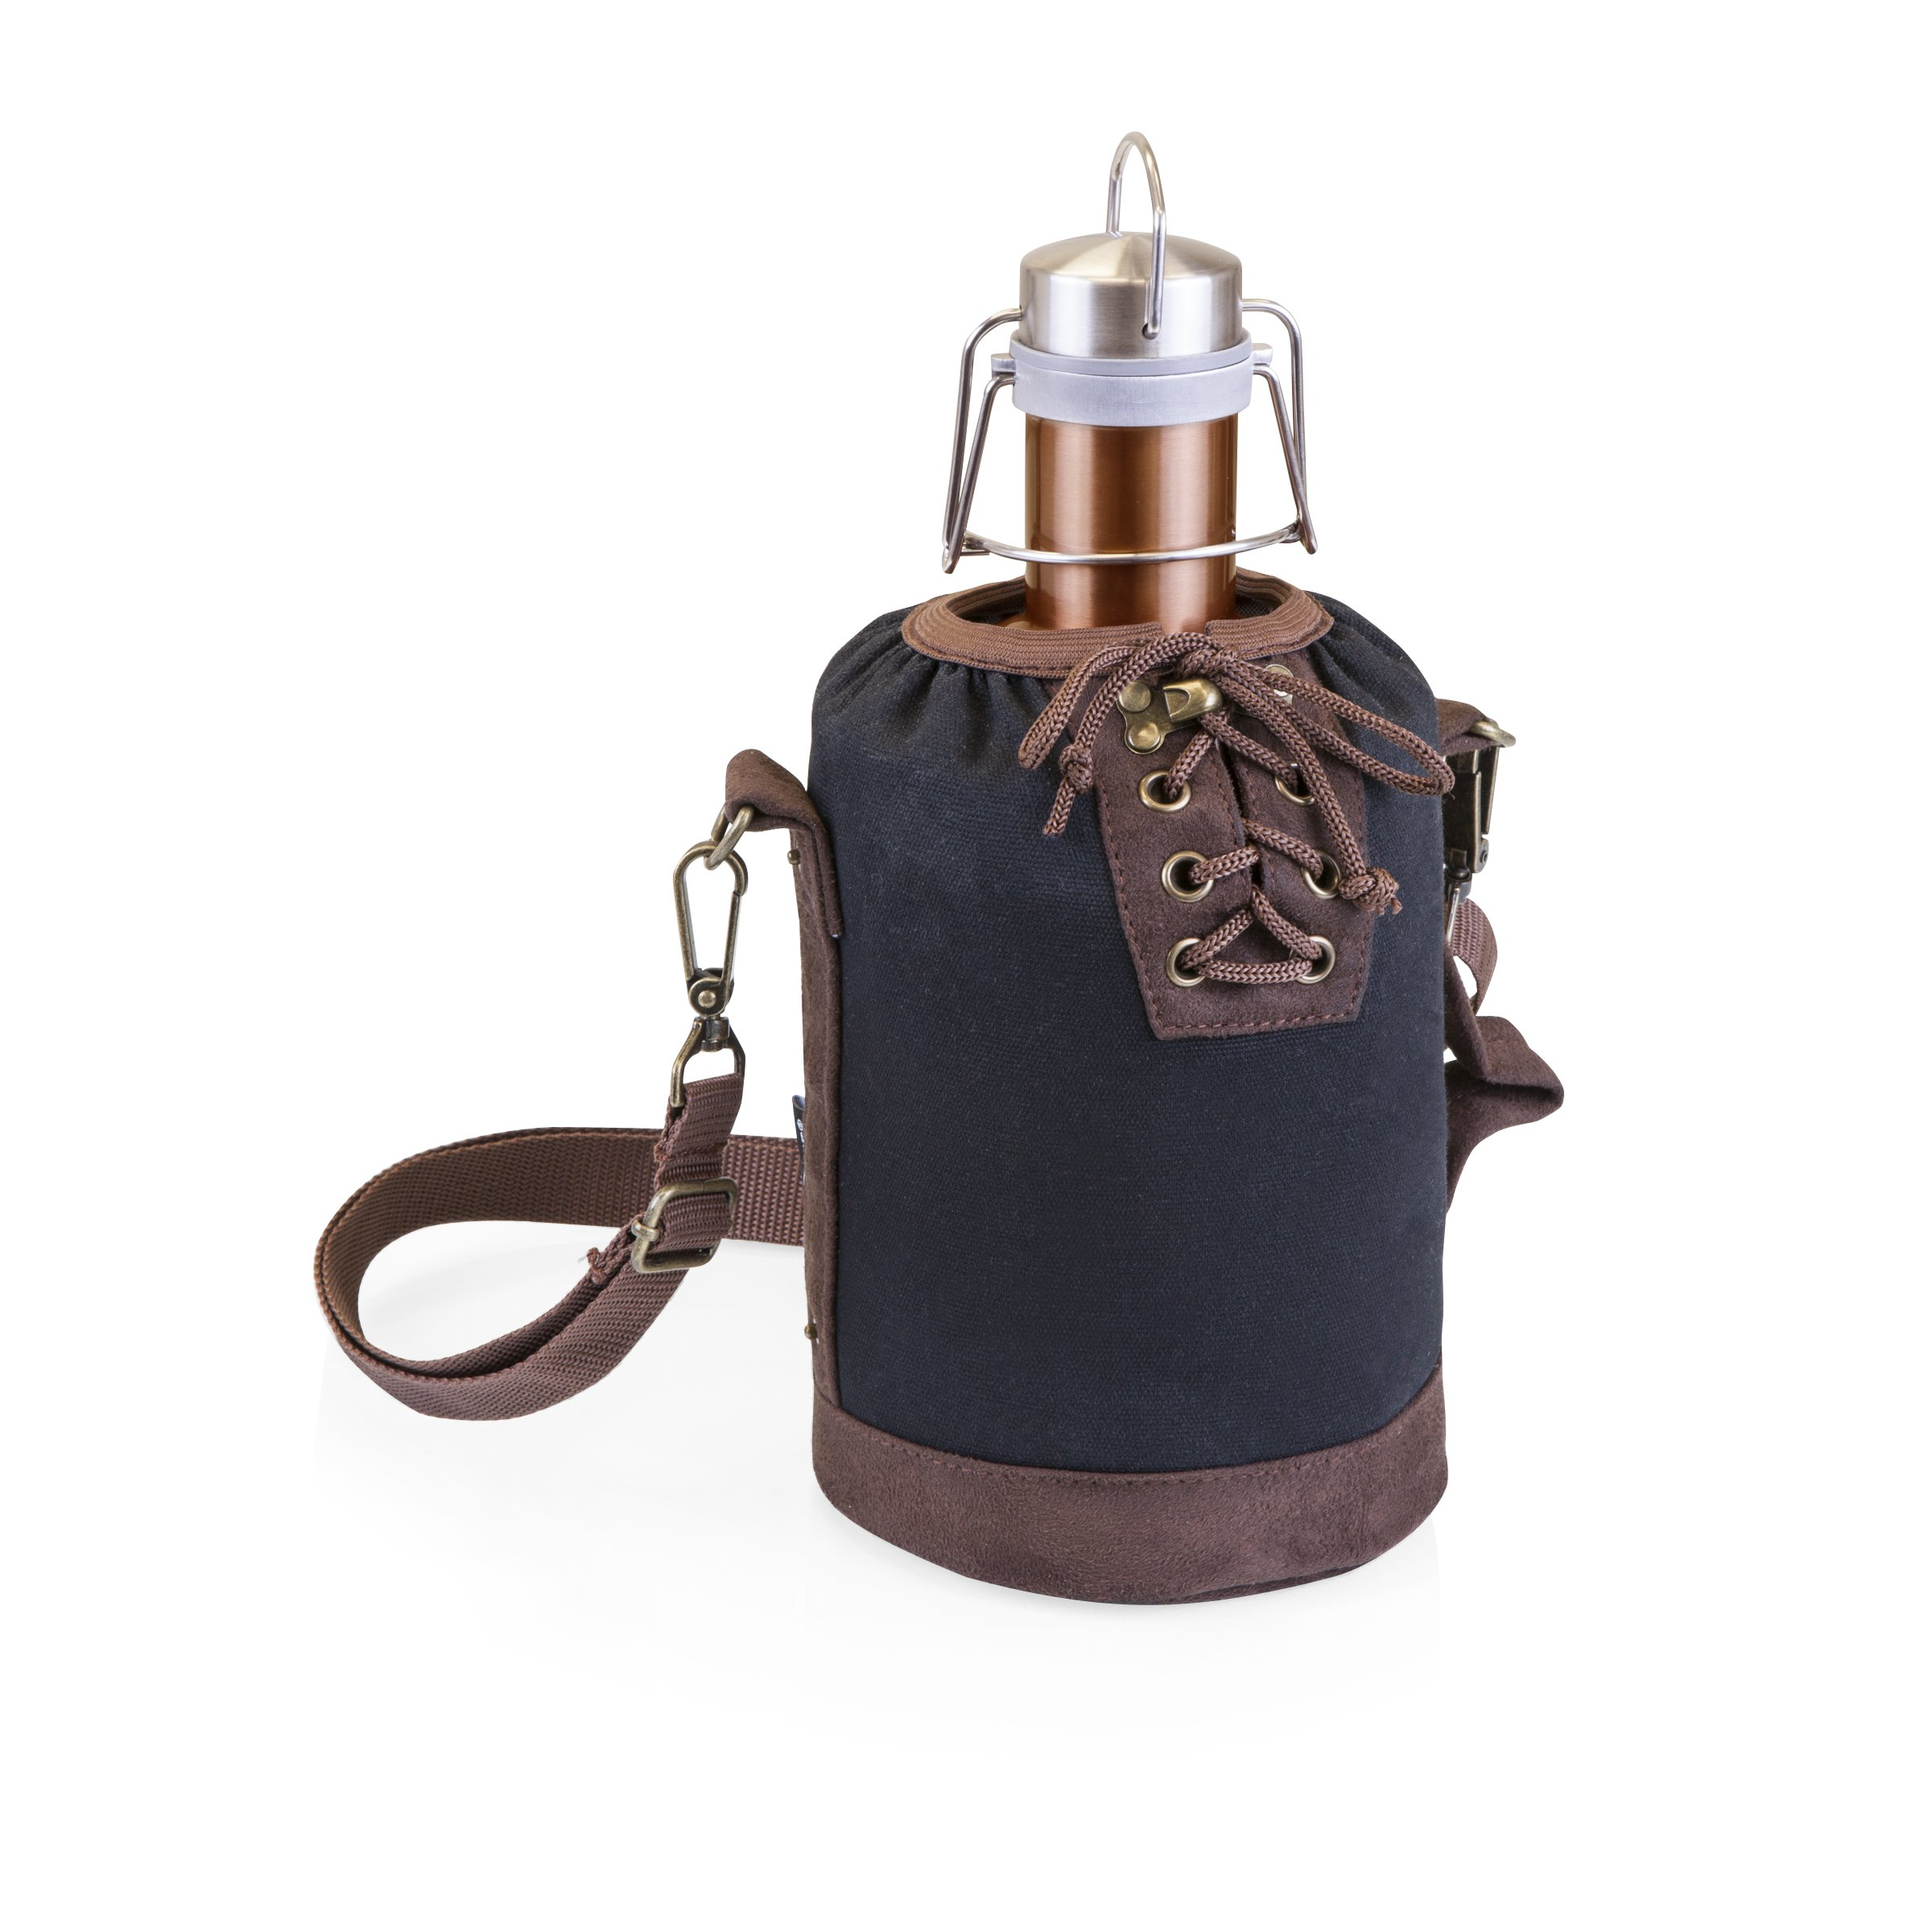 LEGACY - a Picnic Time Brand Stainless Steel Growler with Copper Finish and Black Canvas Lace up Growler Tote, 64-Ounce